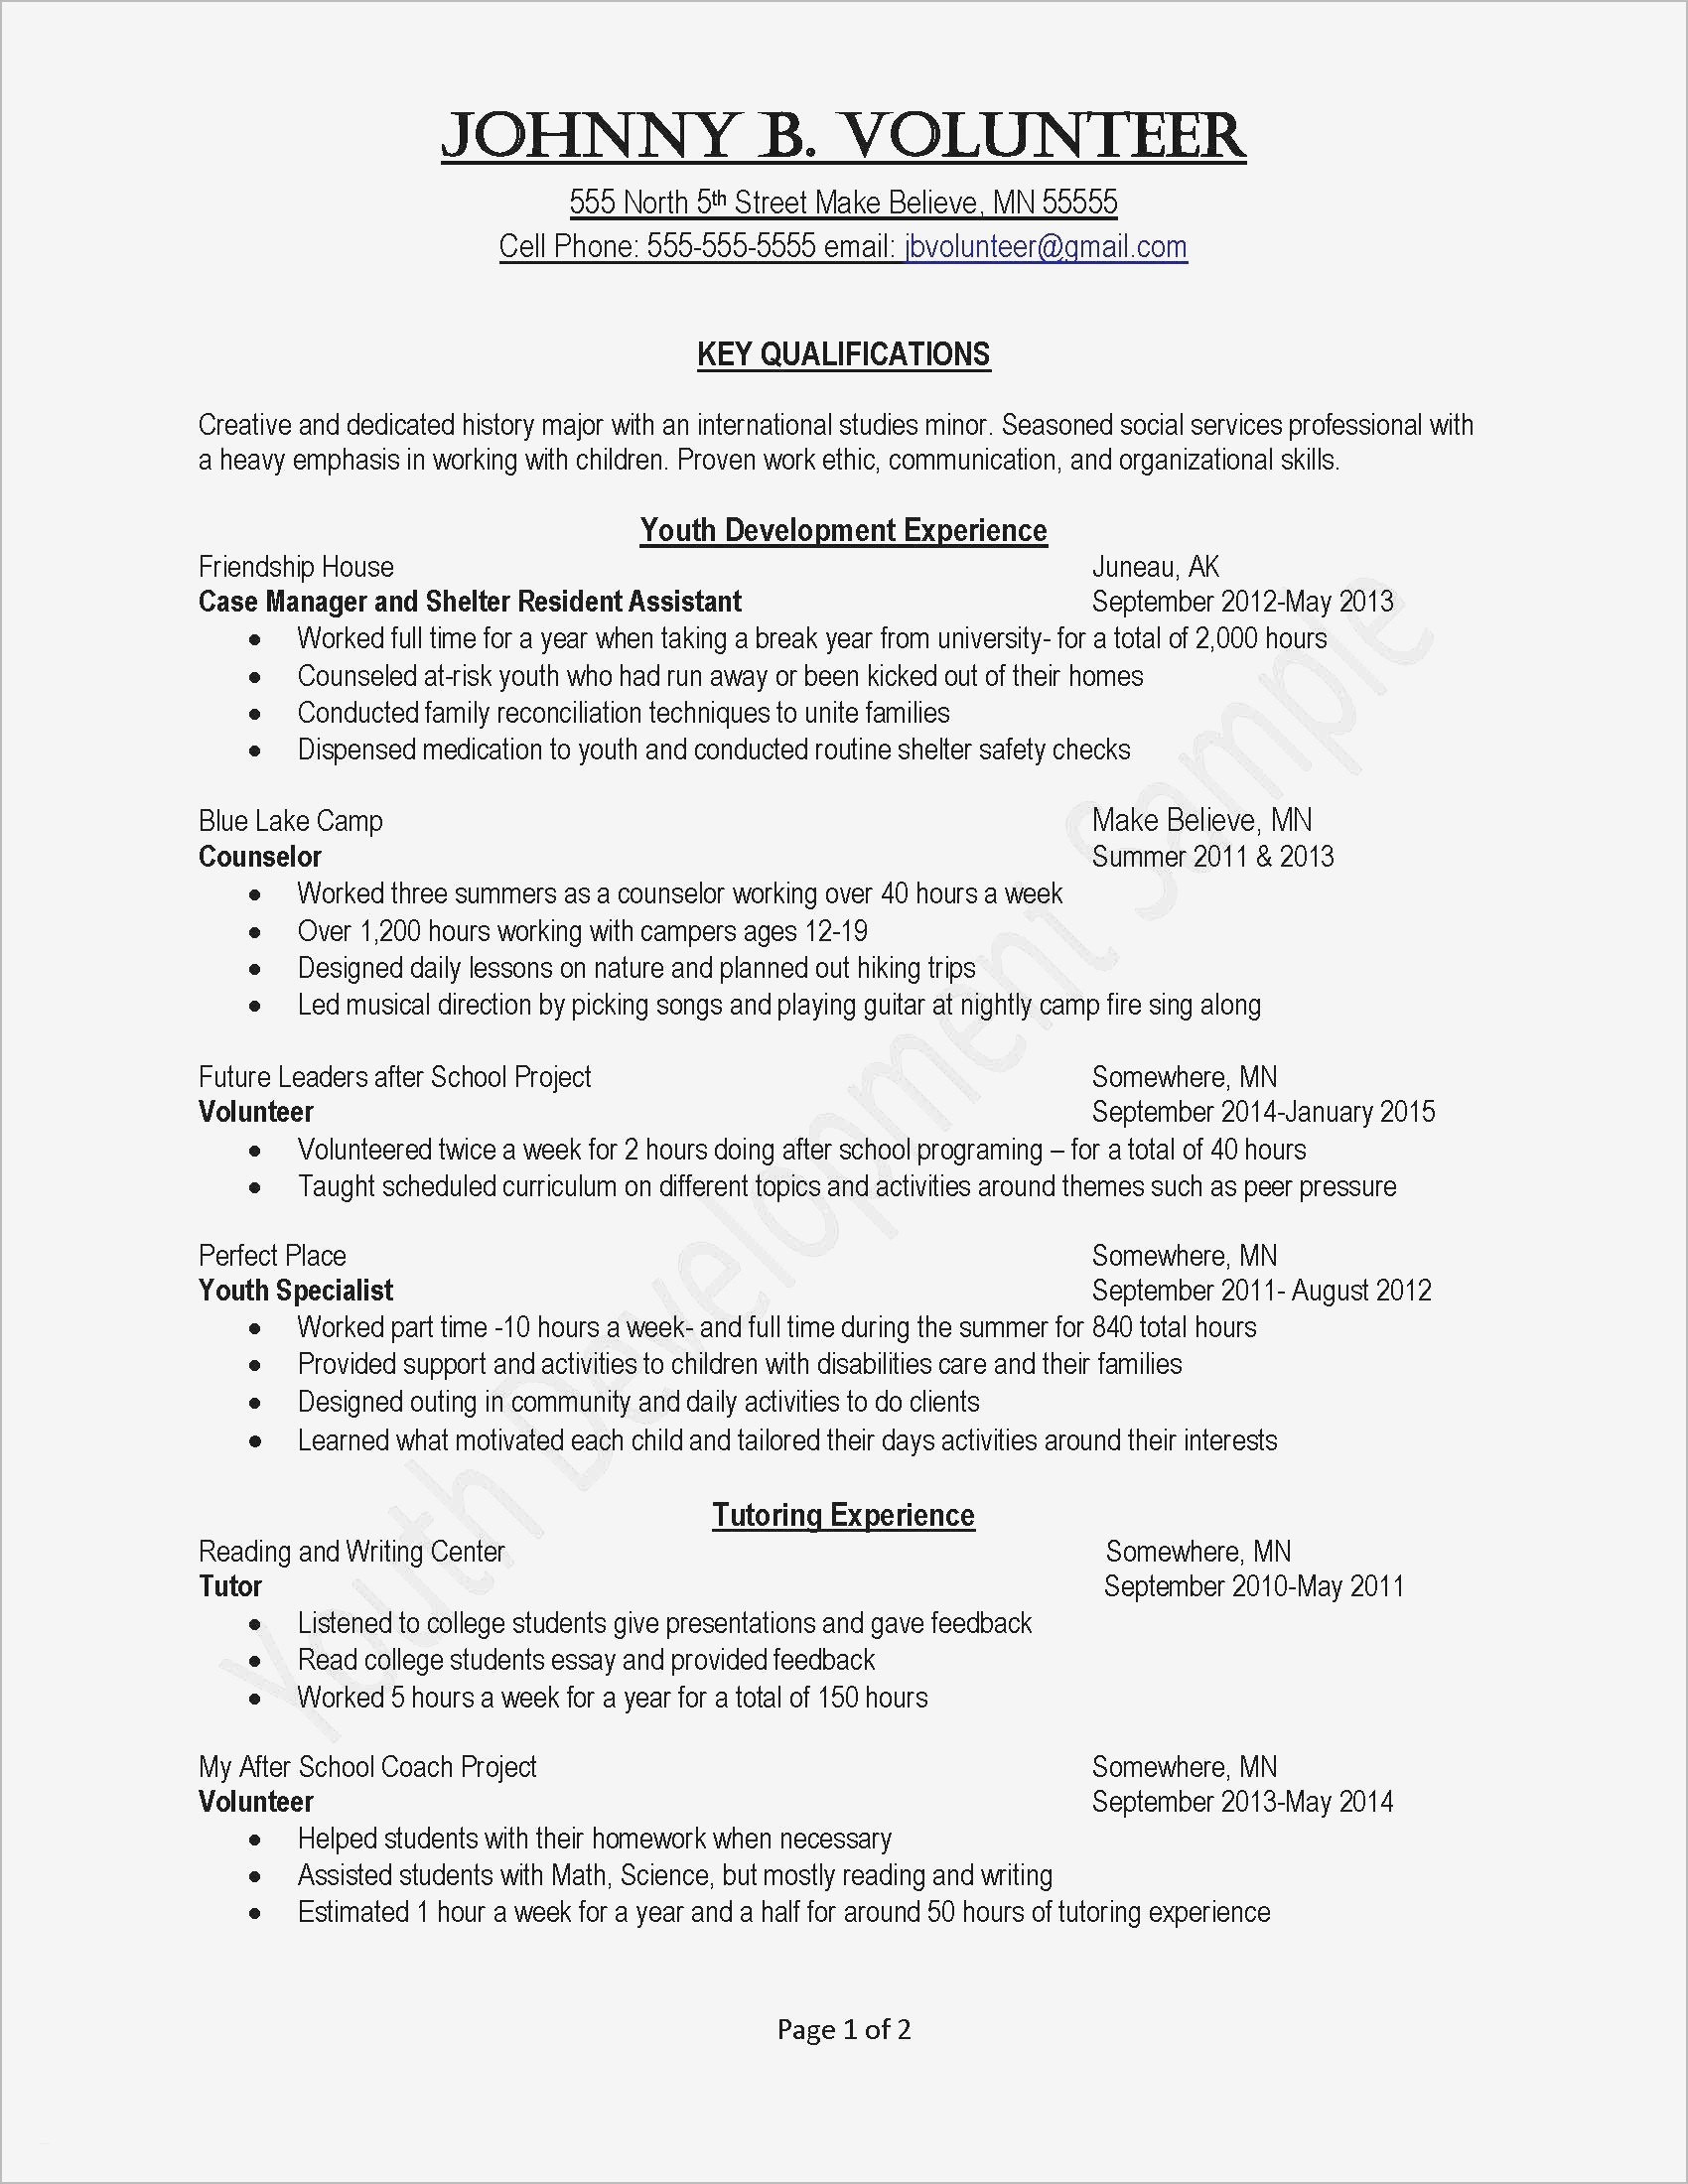 Cover Letter Template Restaurant - Cover Letter Exapmles Free Templates for Resumes and Cover Letters